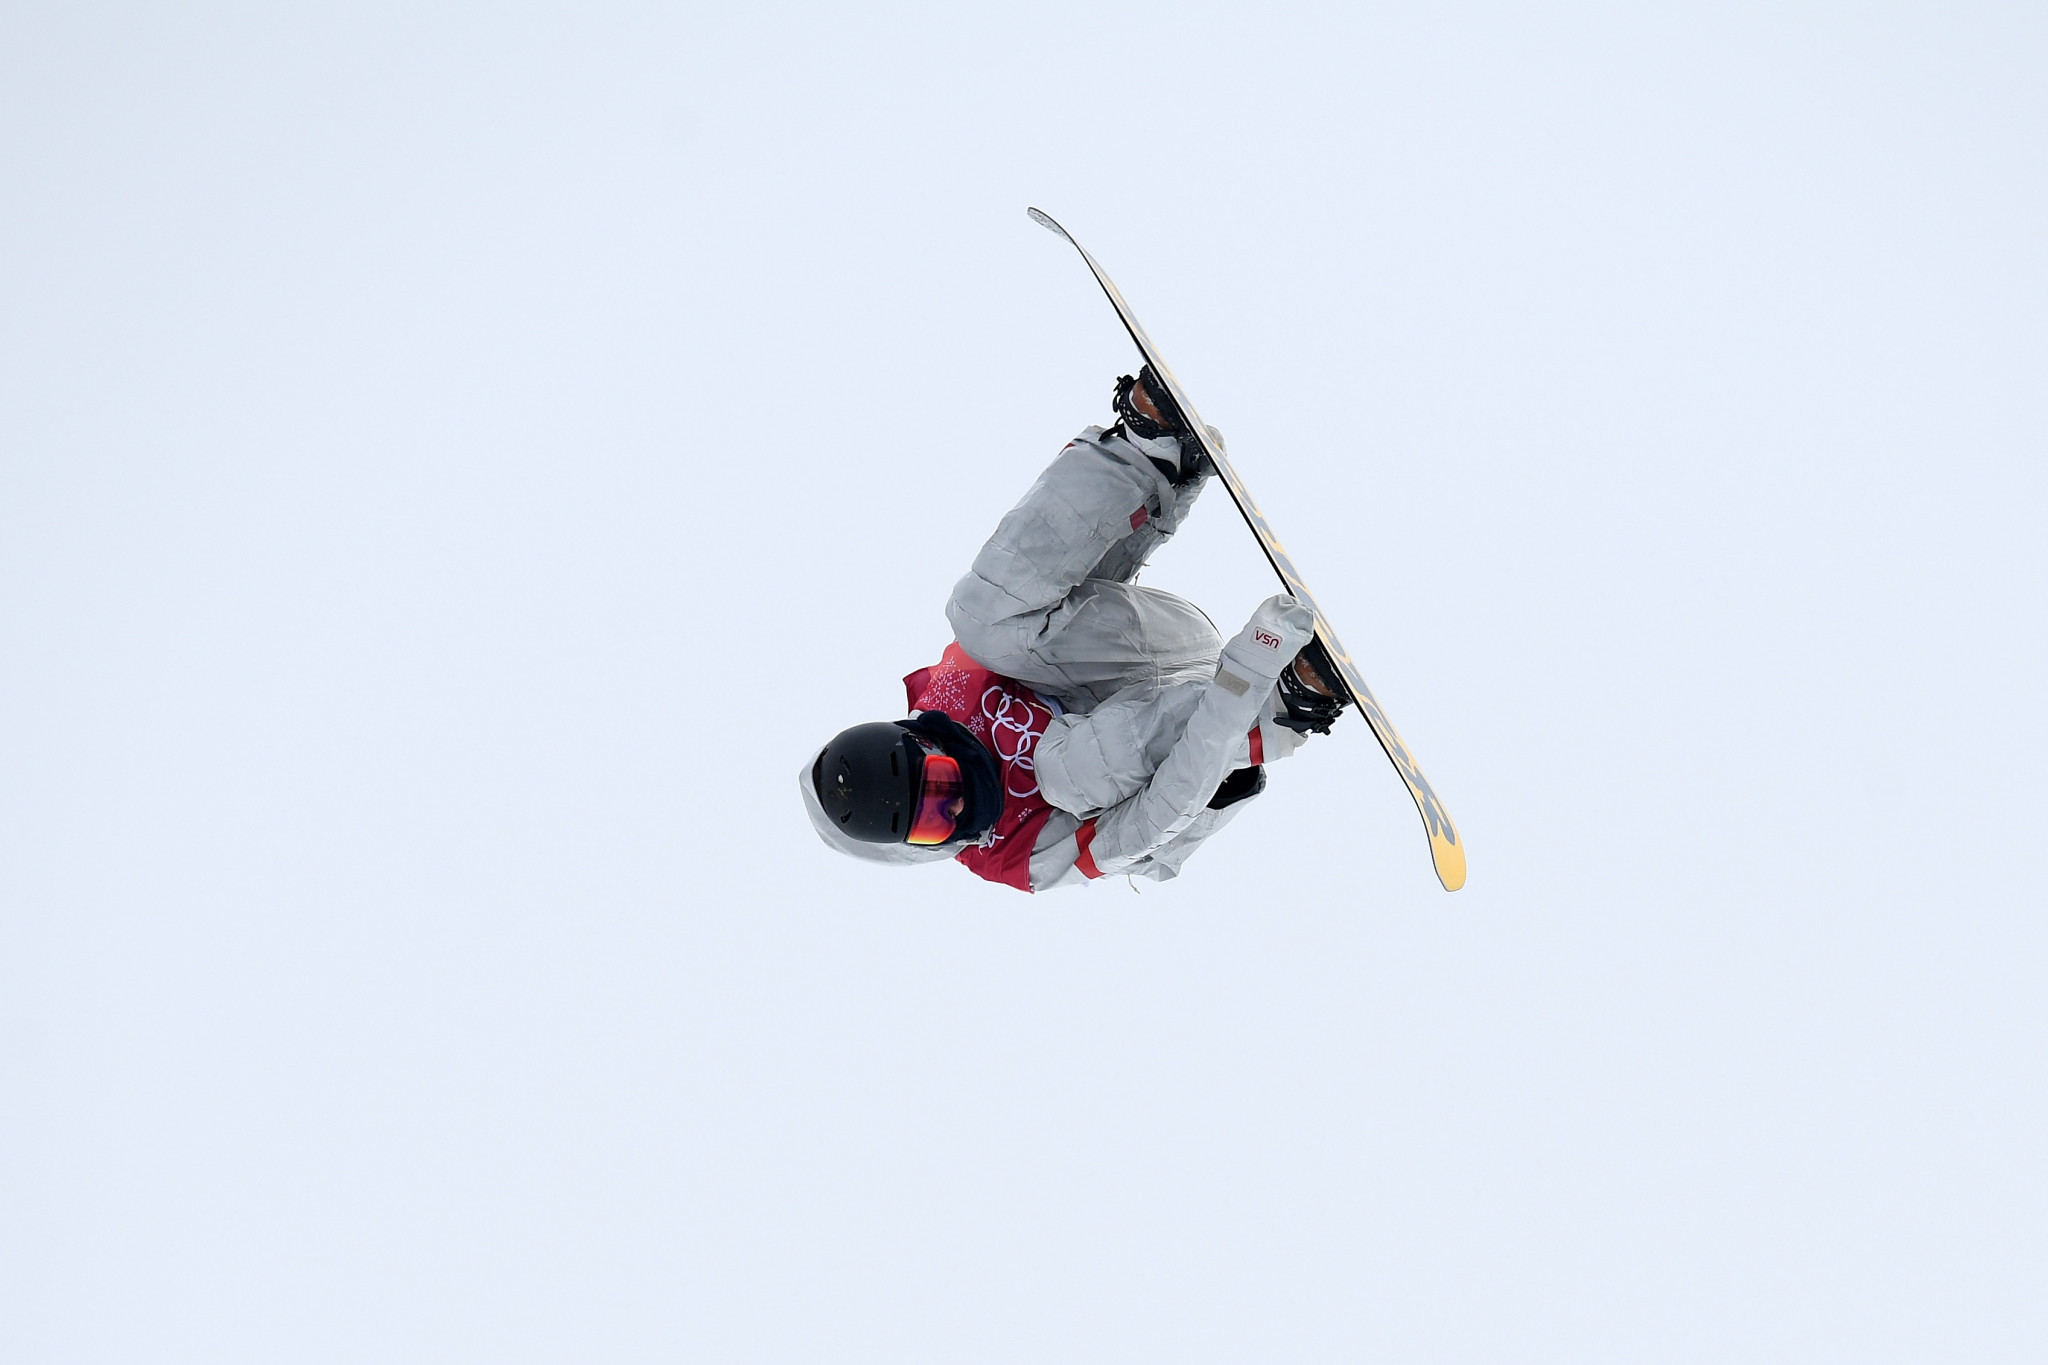 The United States' Kyle Mack produced strong first and second runs to take the silver medal ©Getty Images